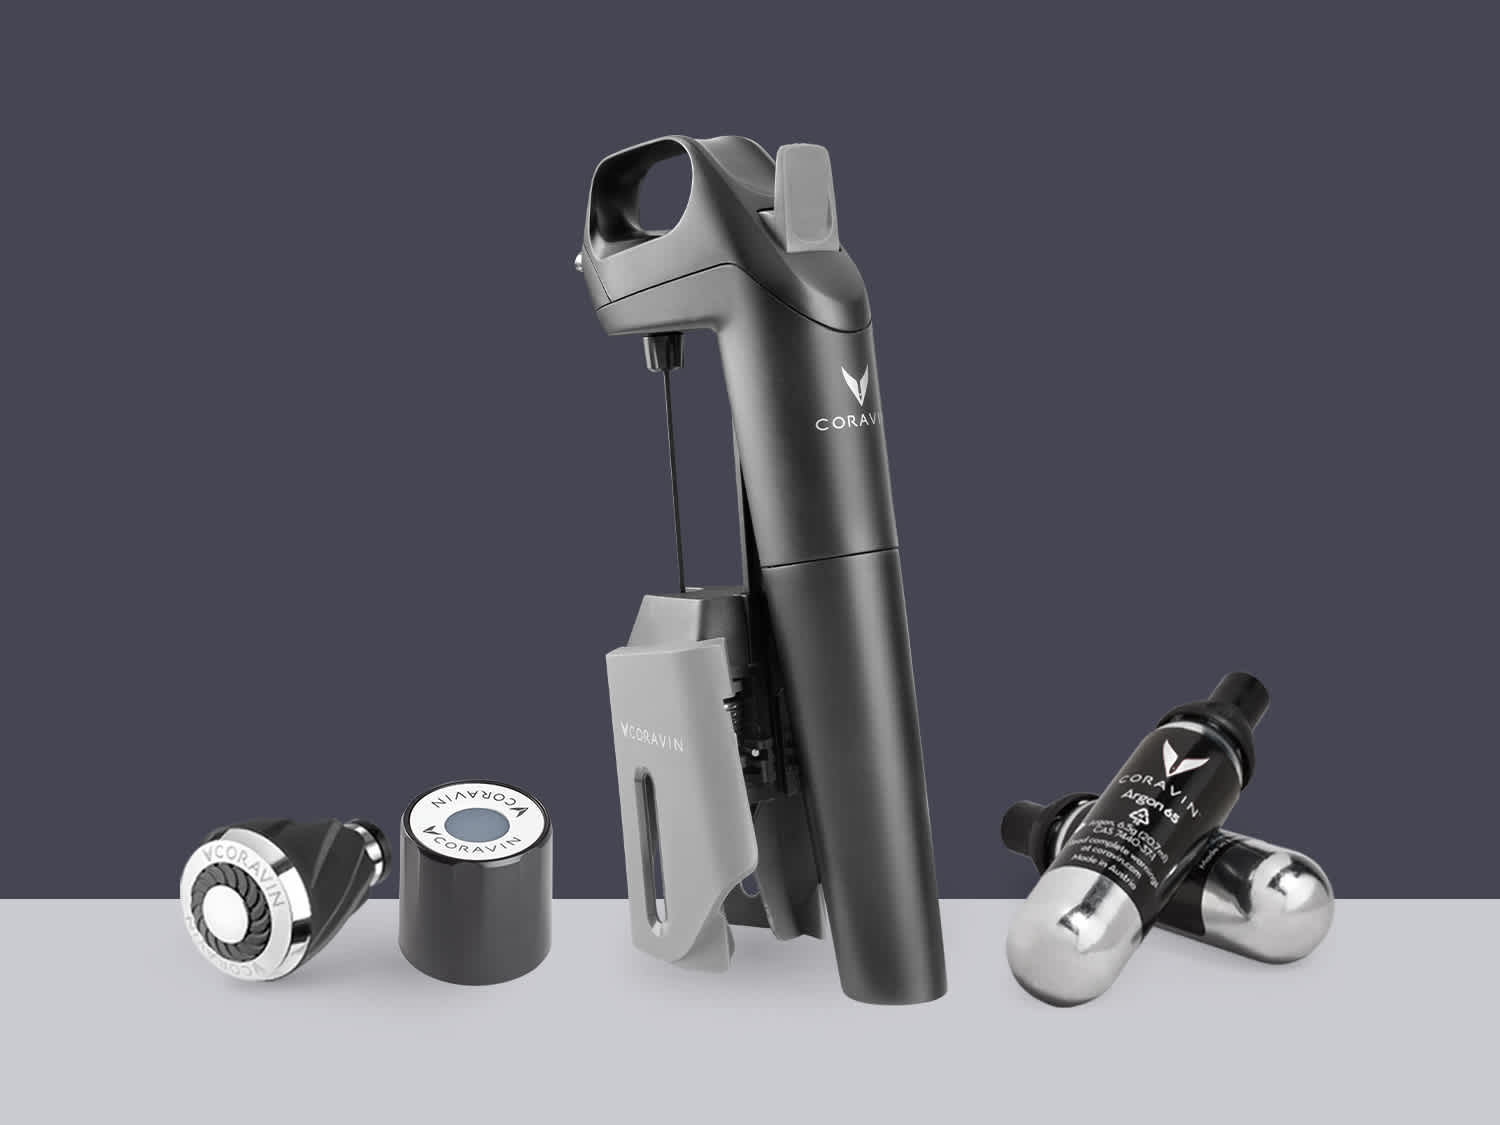 Product shot of Model Three System, two Coravin Capsules, one Coravin Screw Cap, and one Coravin Aerator.